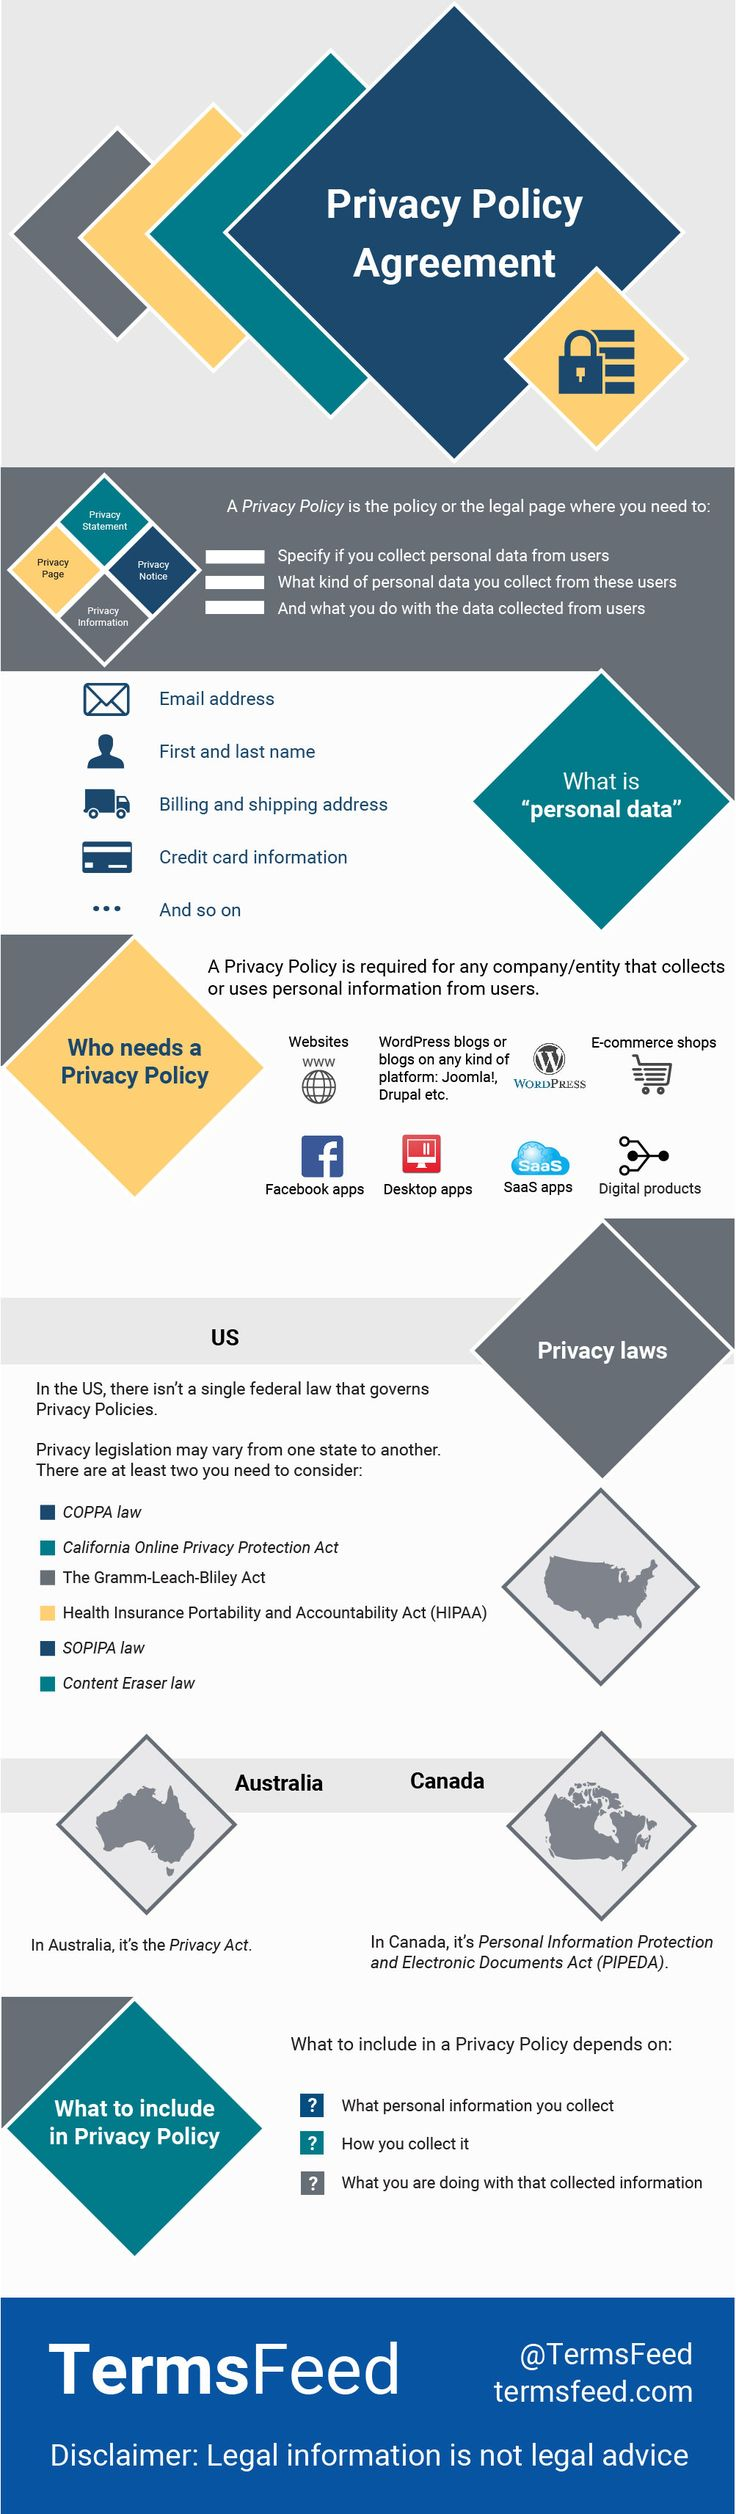 30 best images about privacy policy on pinterest